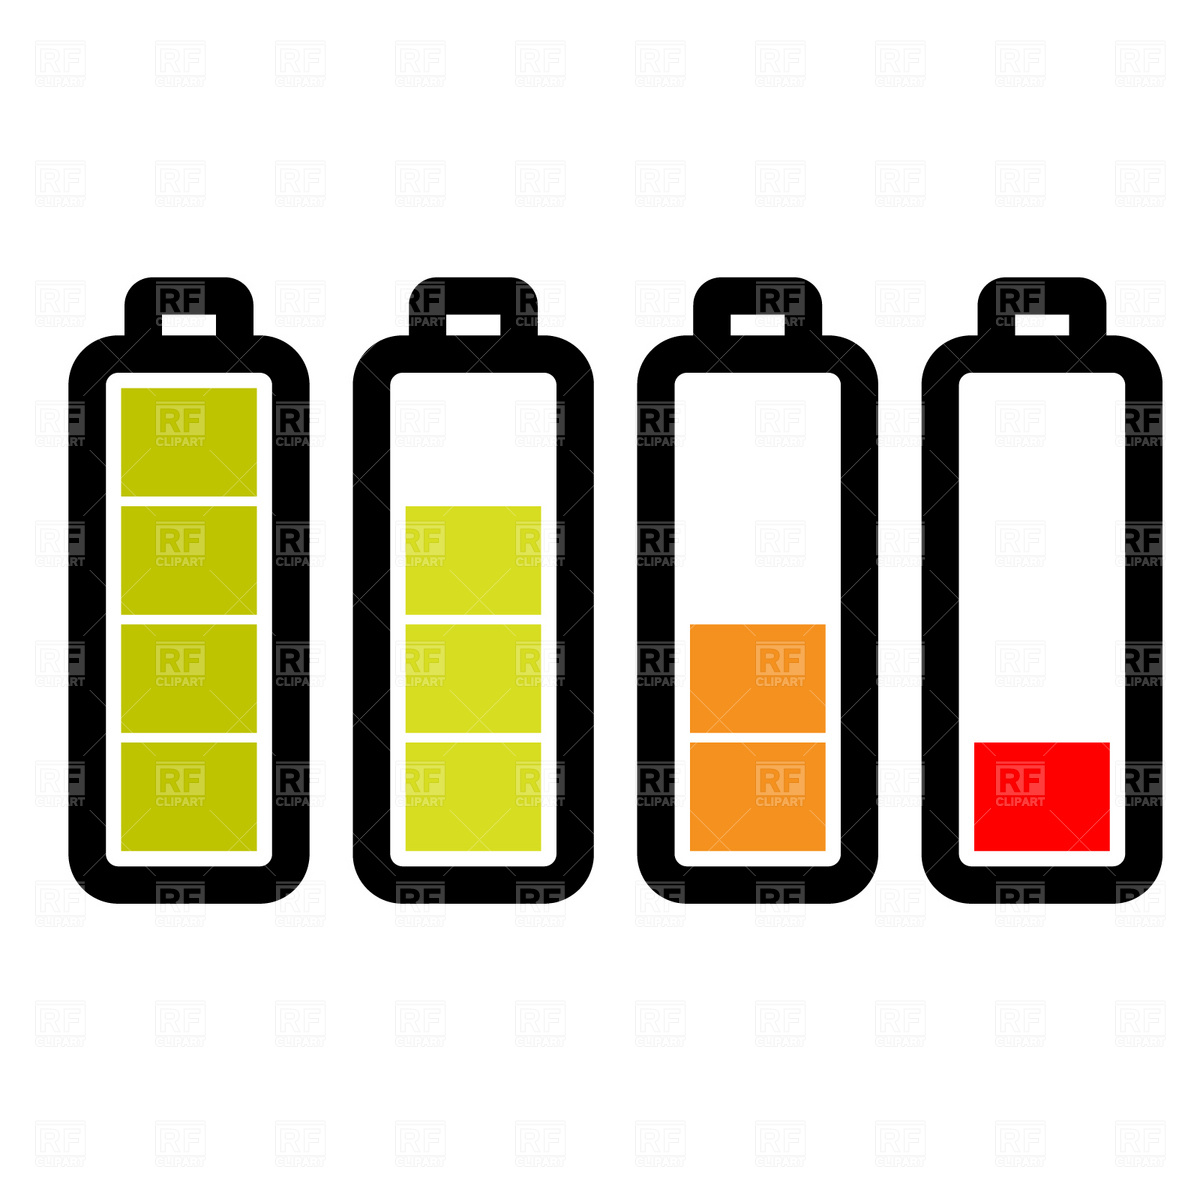 level-of-the-battery-charge-icons-Download-Royalty-free-Vector-File-EPS-3201